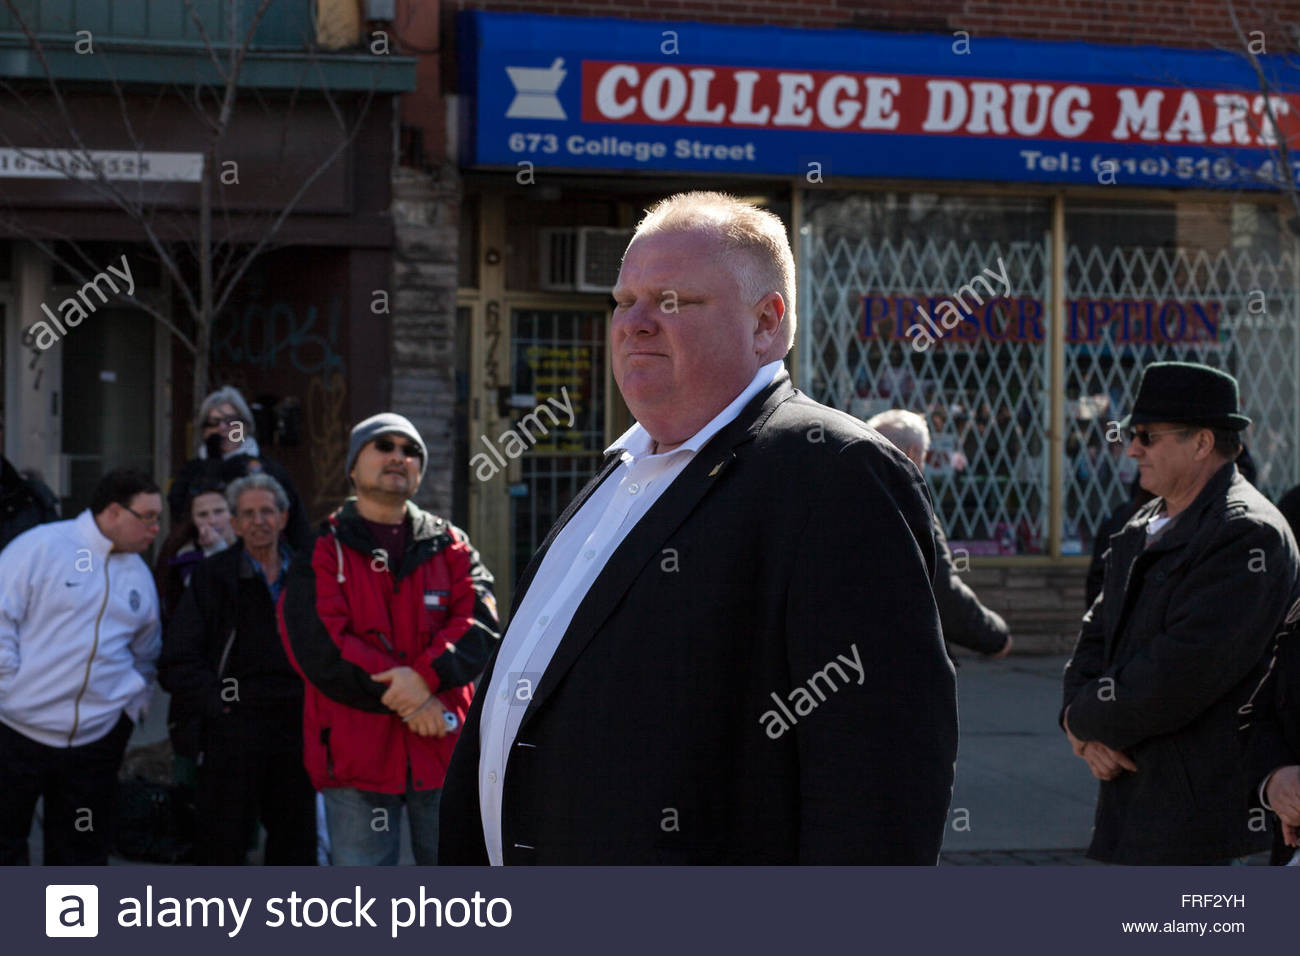 Mayor Rob Ford closes his eyes as he walks past staring spectators and College Drug Mart, Easter, Stations of the - Stock Image